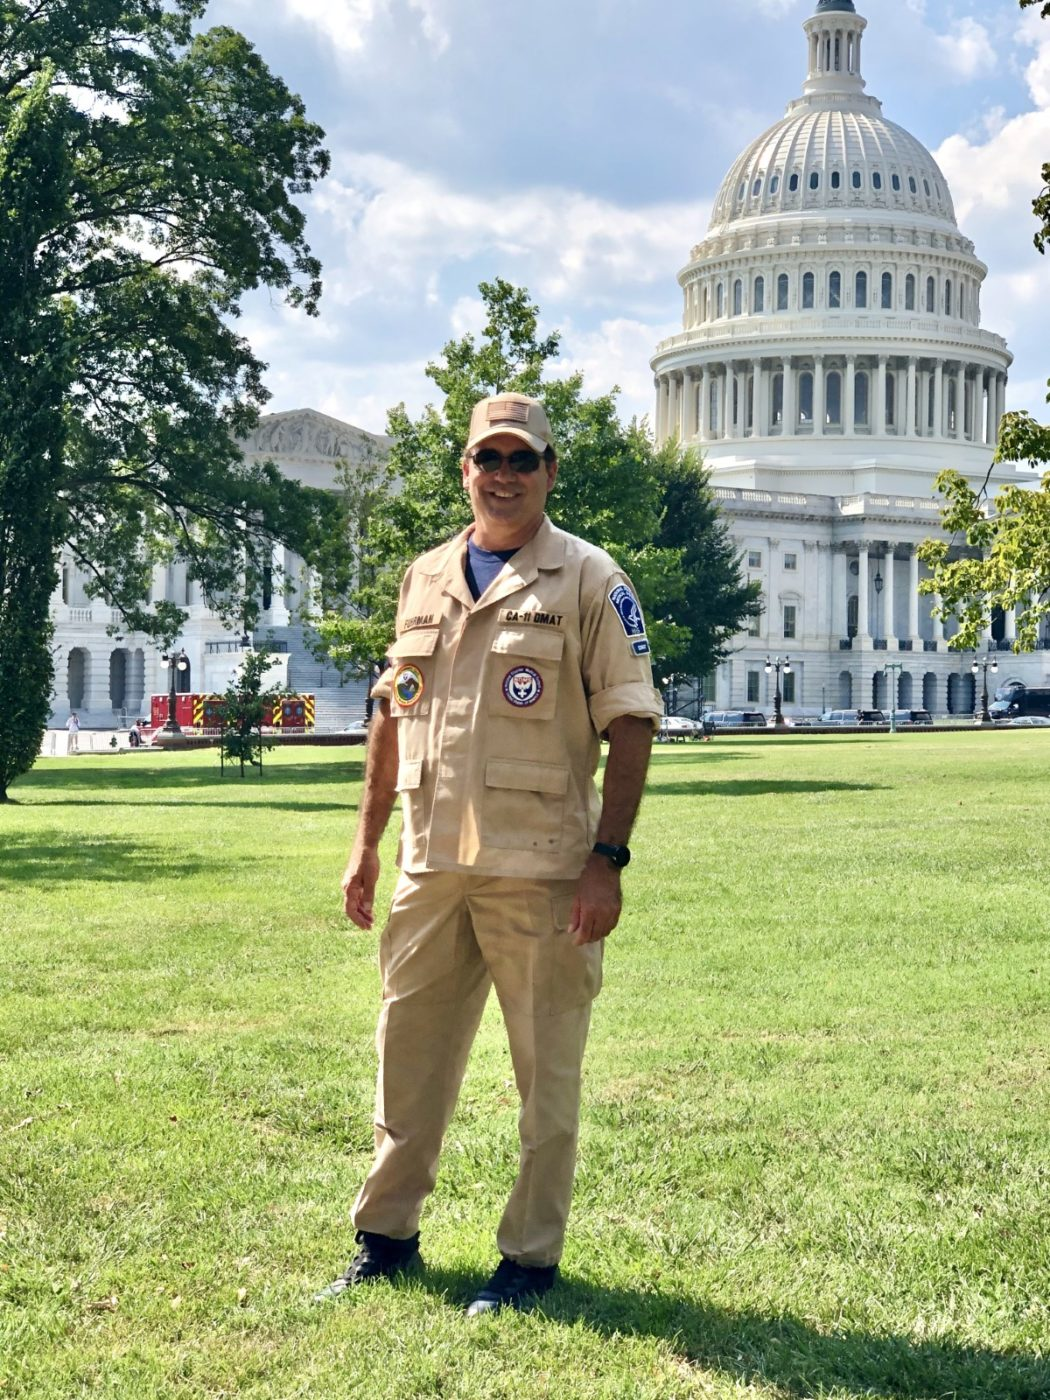 CSLEA Member Jerry Fuhrman Deployed as Safety Officer for Rep. John Lewis Remembrance in Washington D.C.